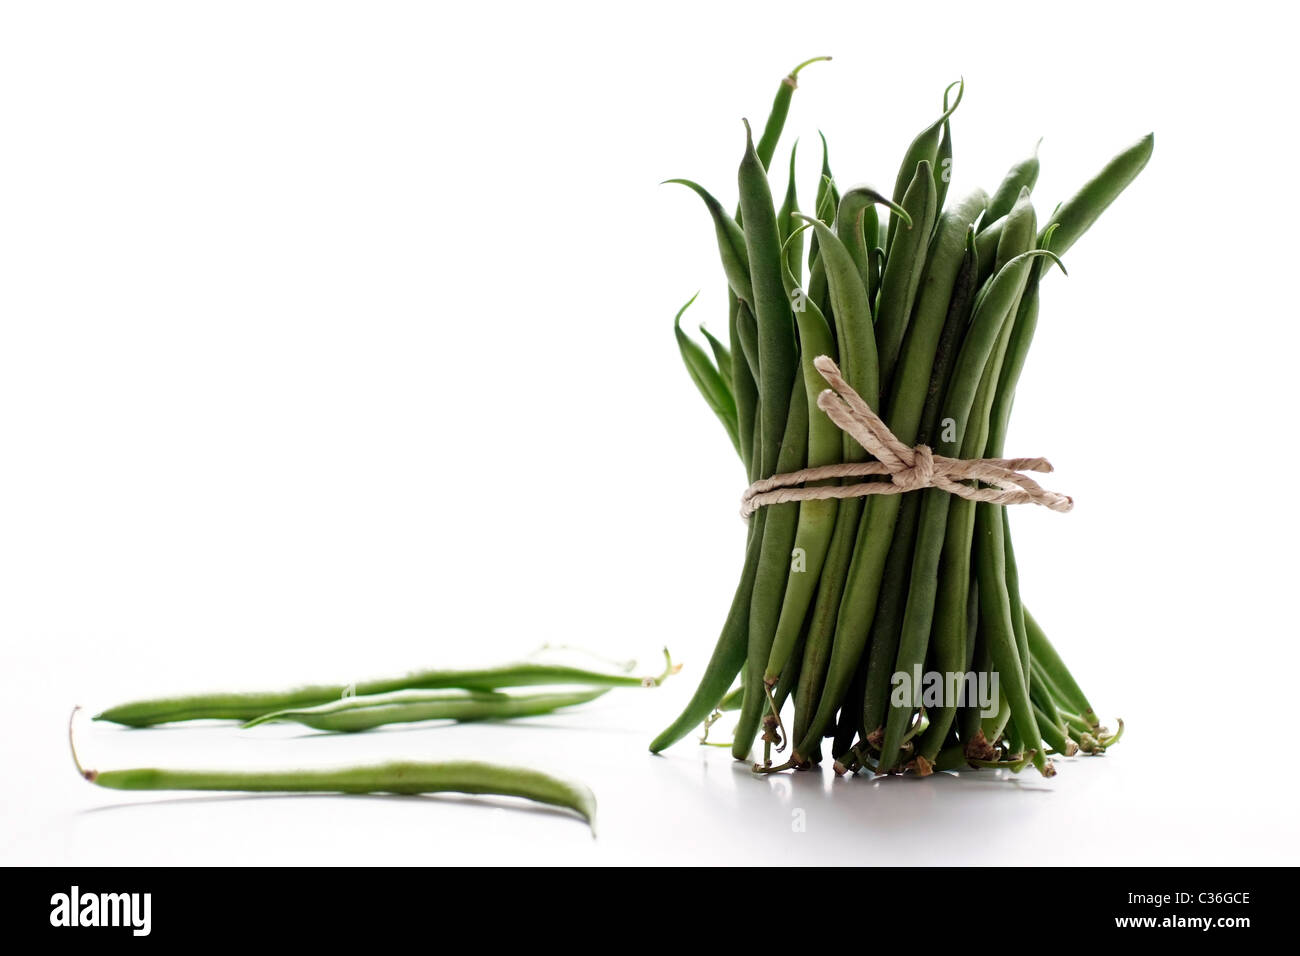 Bunch of fresh green beans - Stock Image